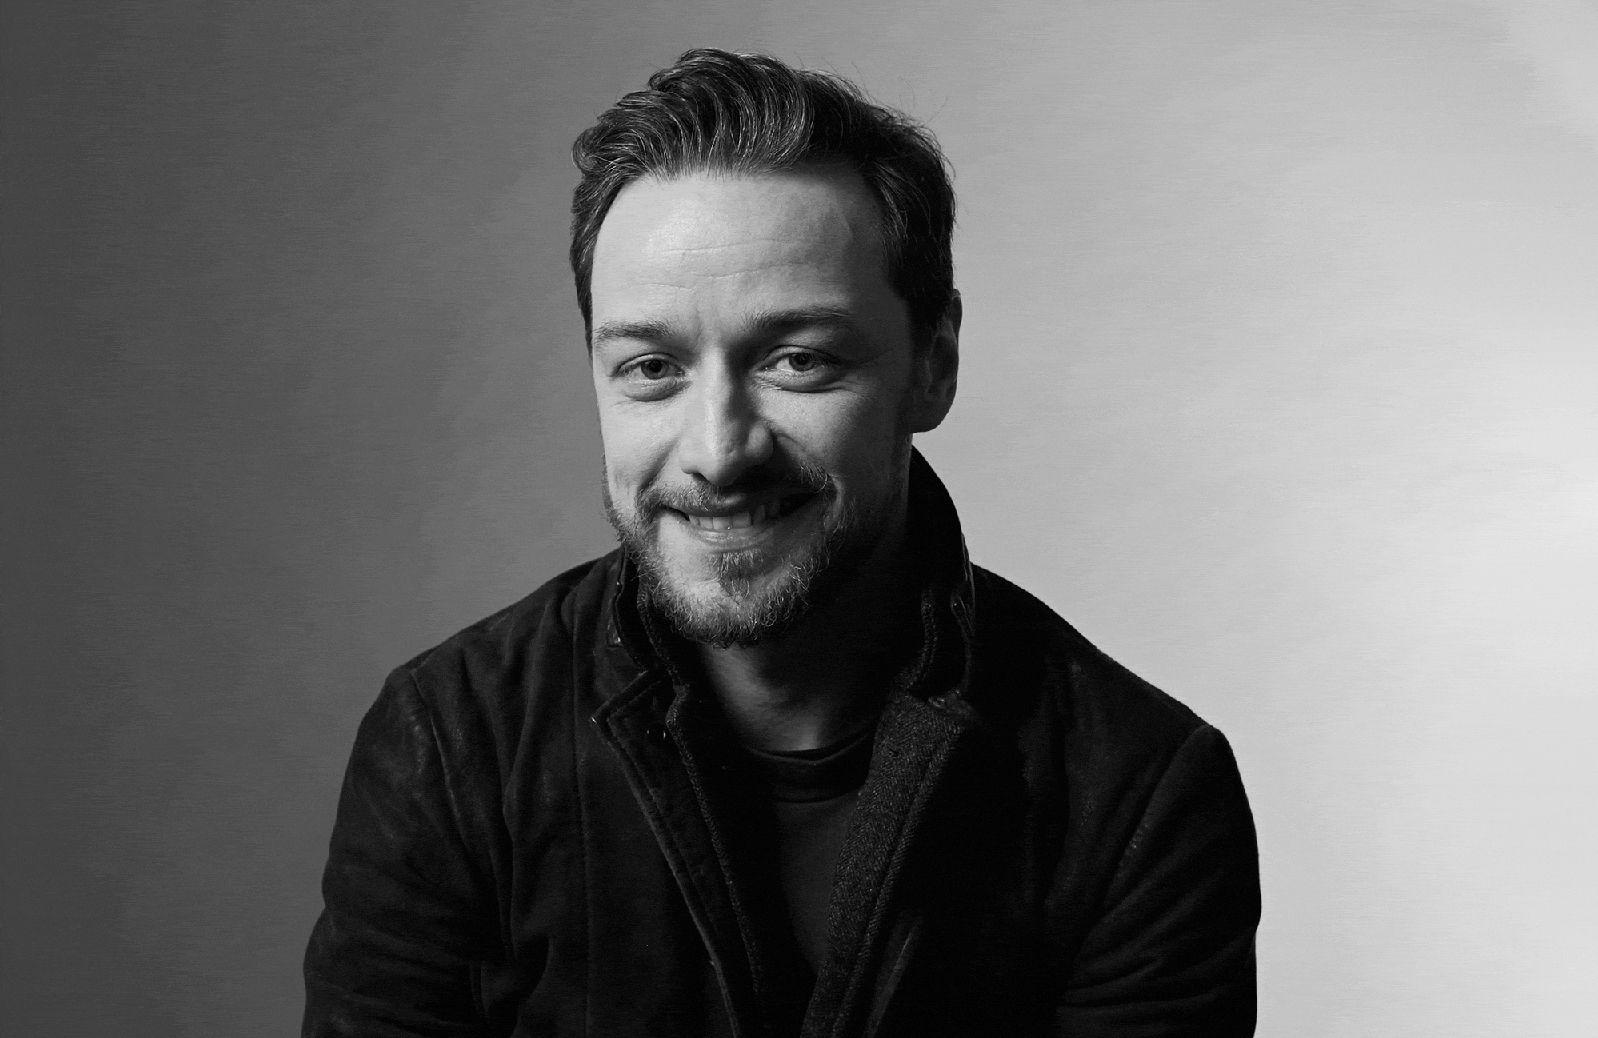 James McAvoy photo 272 of 279 pics, wallpapers